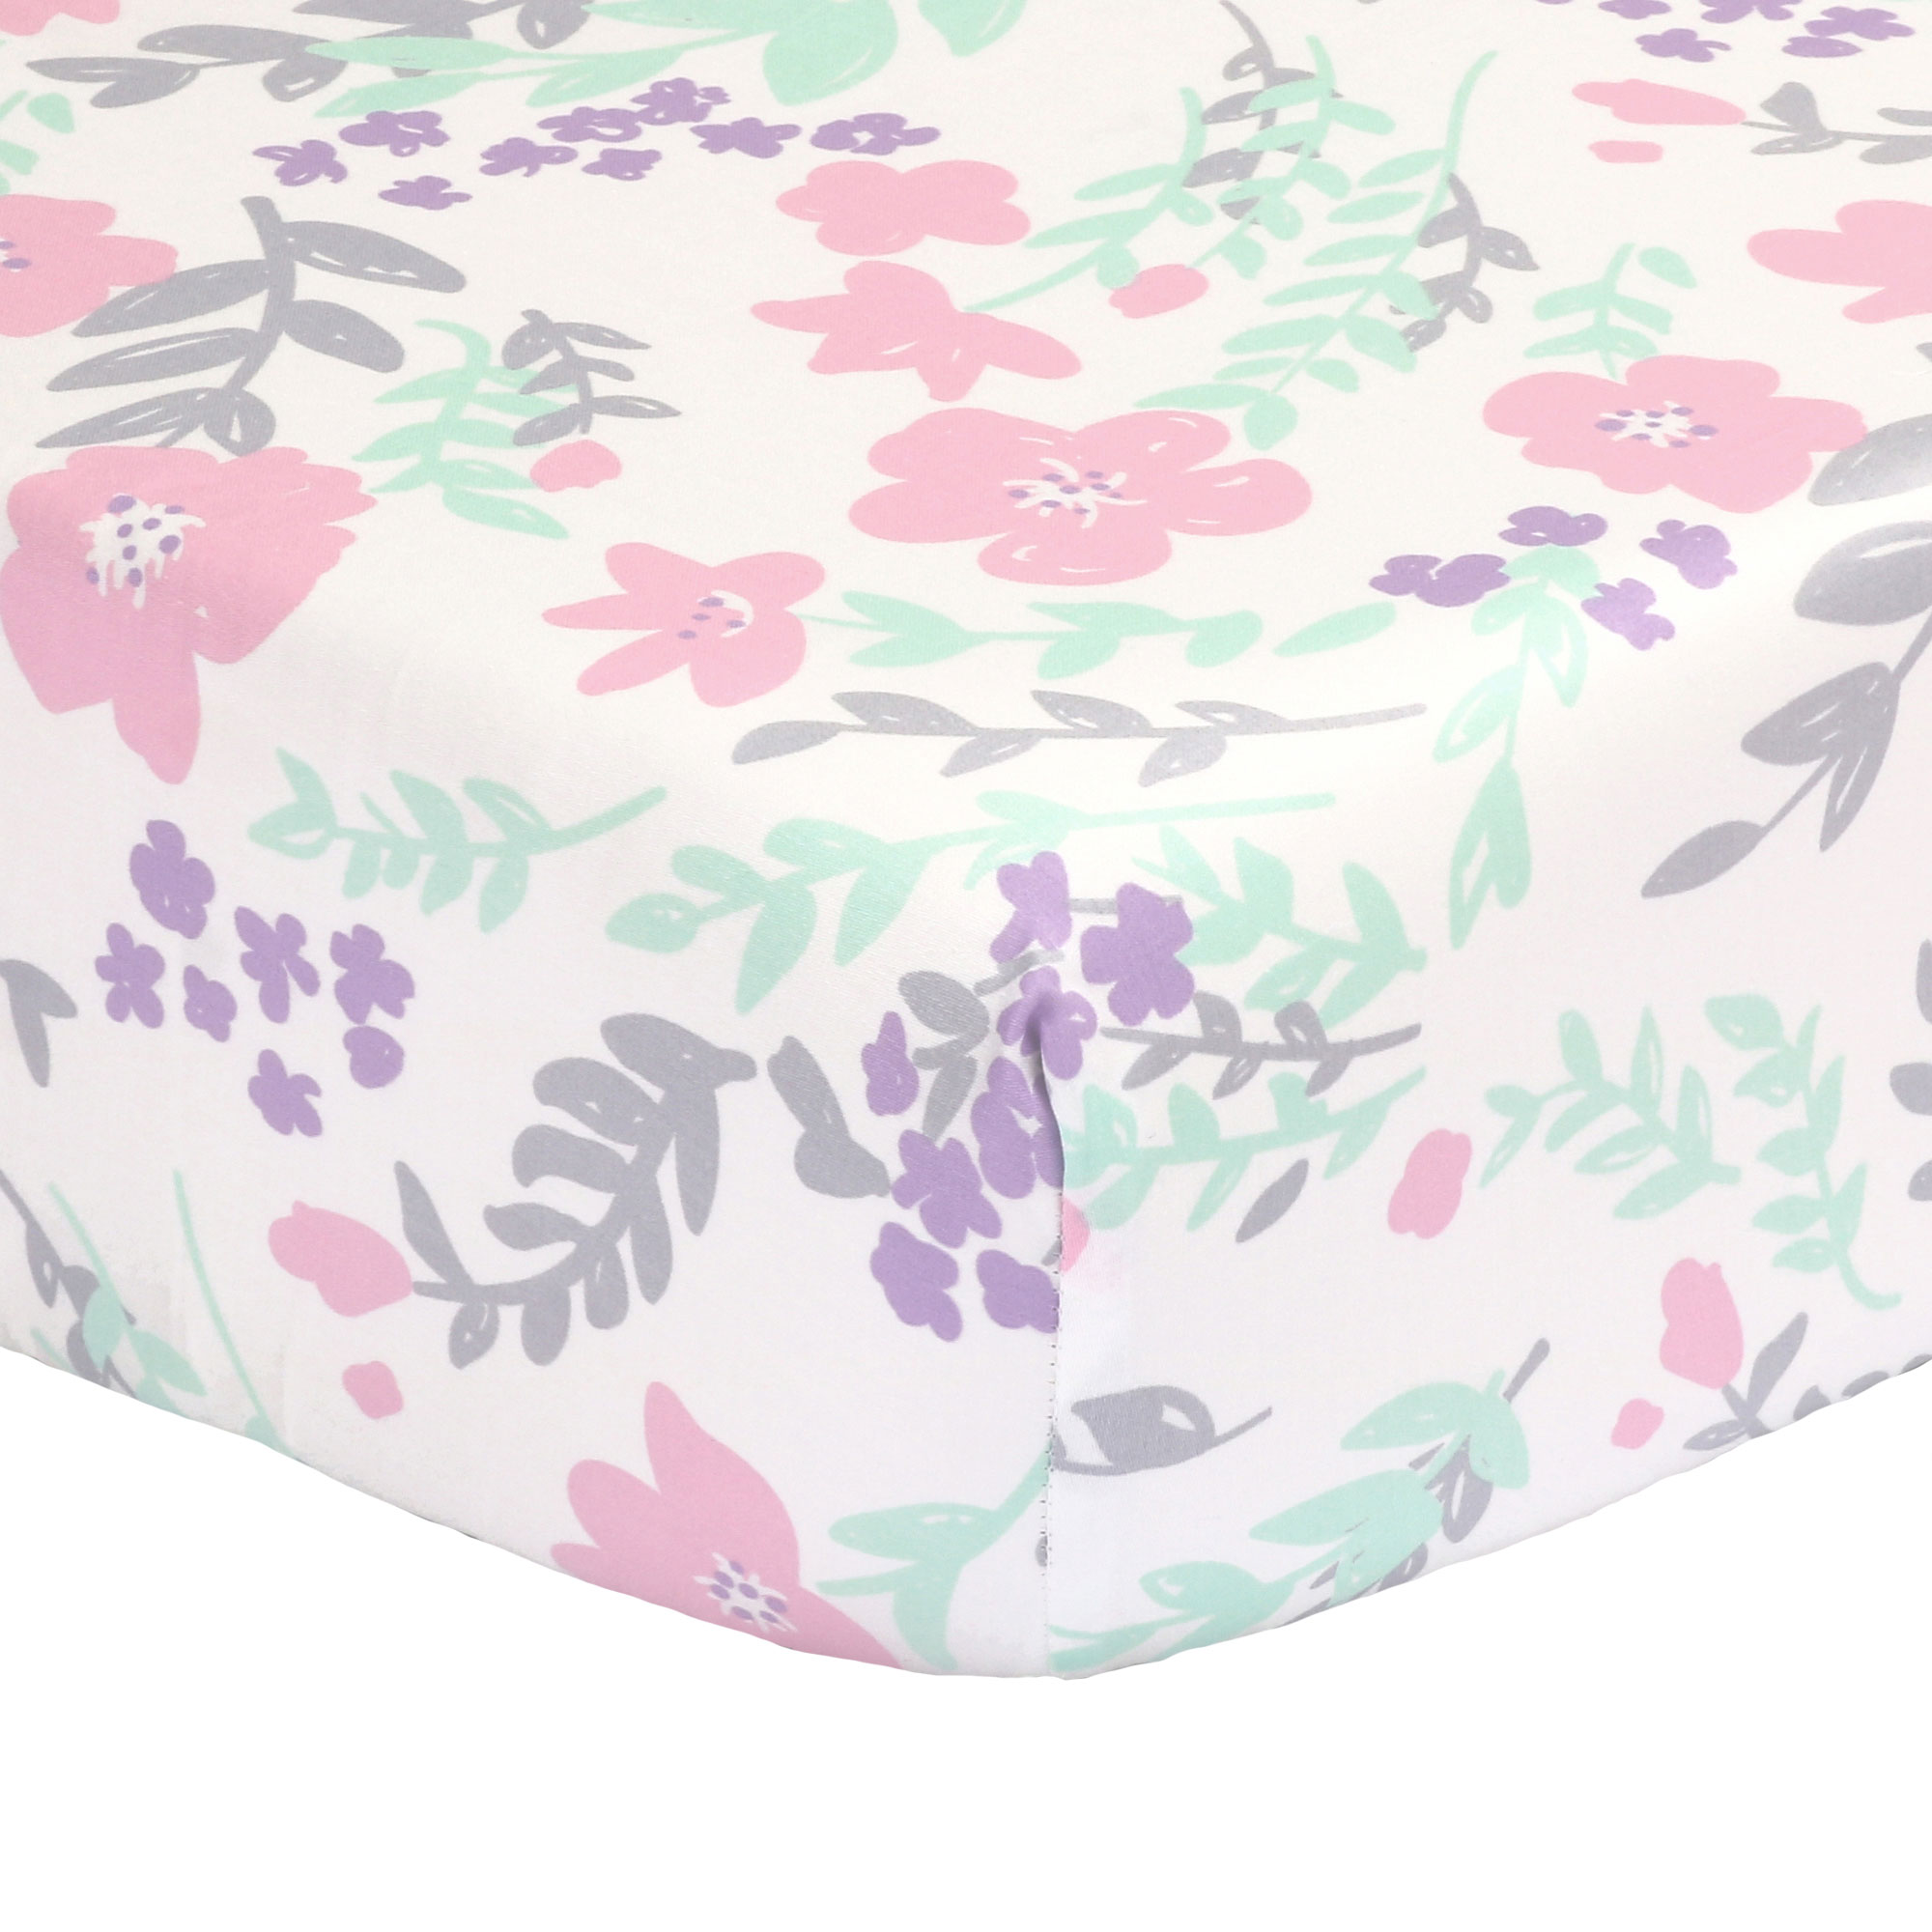 The Peanut Shell Baby Crib Fitted Sheet - Pink, Mint Green, Purple and Grey Floral - 100% Cotton Sateen, Fits Standard 52 by 28 Inch Mattress